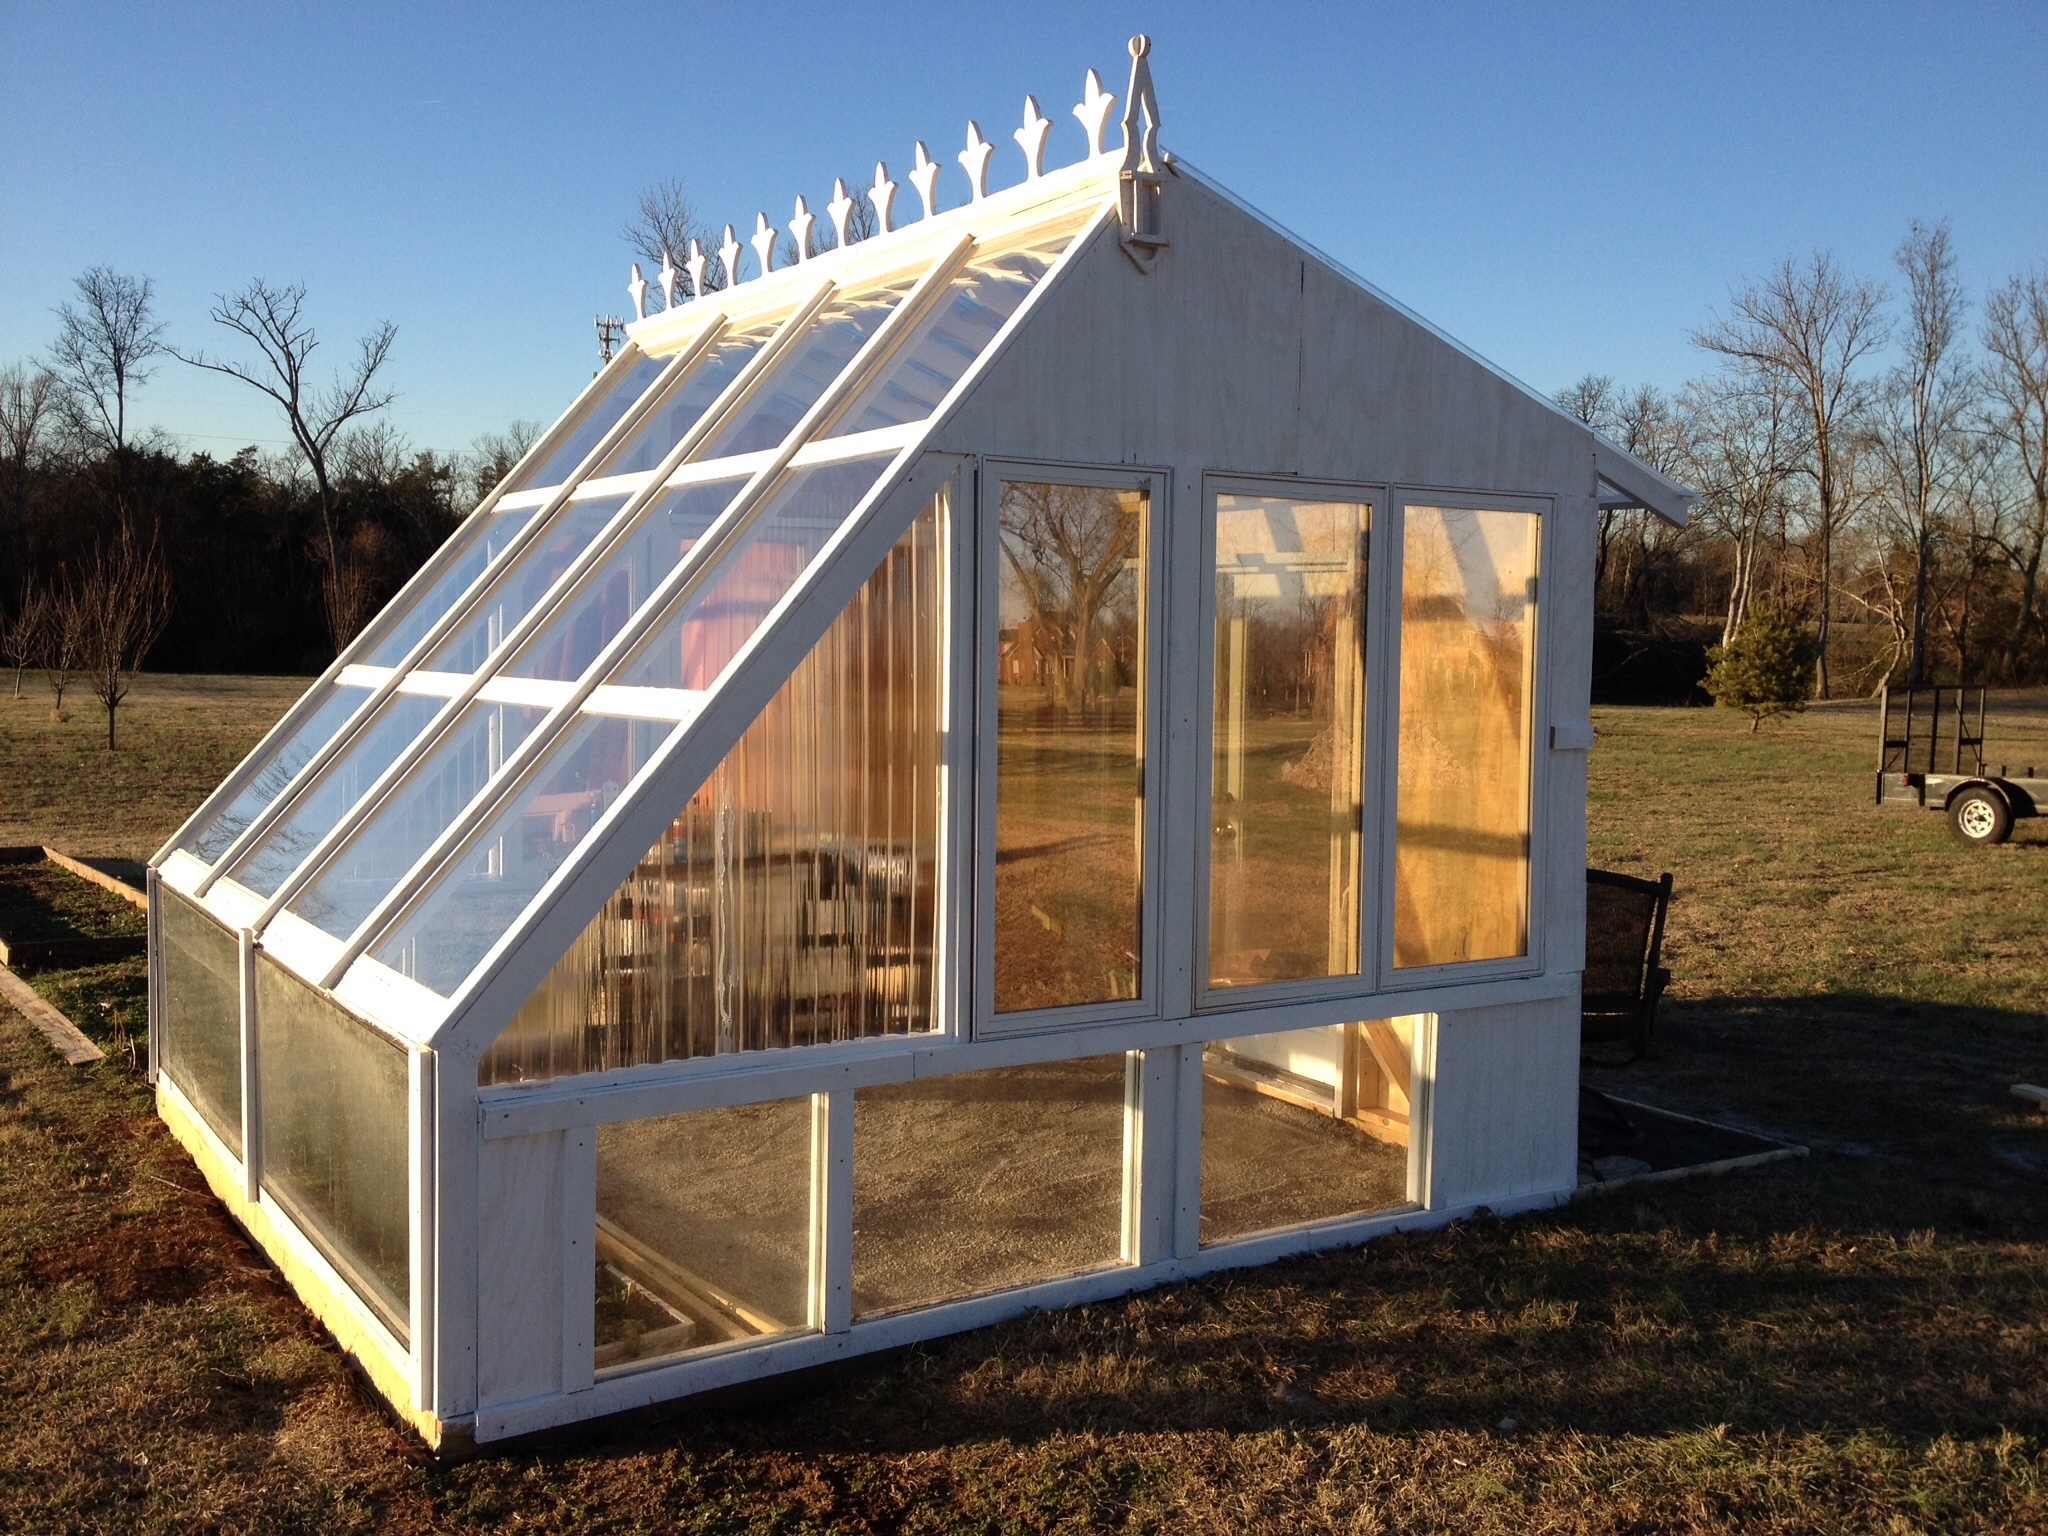 Picture of Backyard Greenhouse From Reclaimed Windows